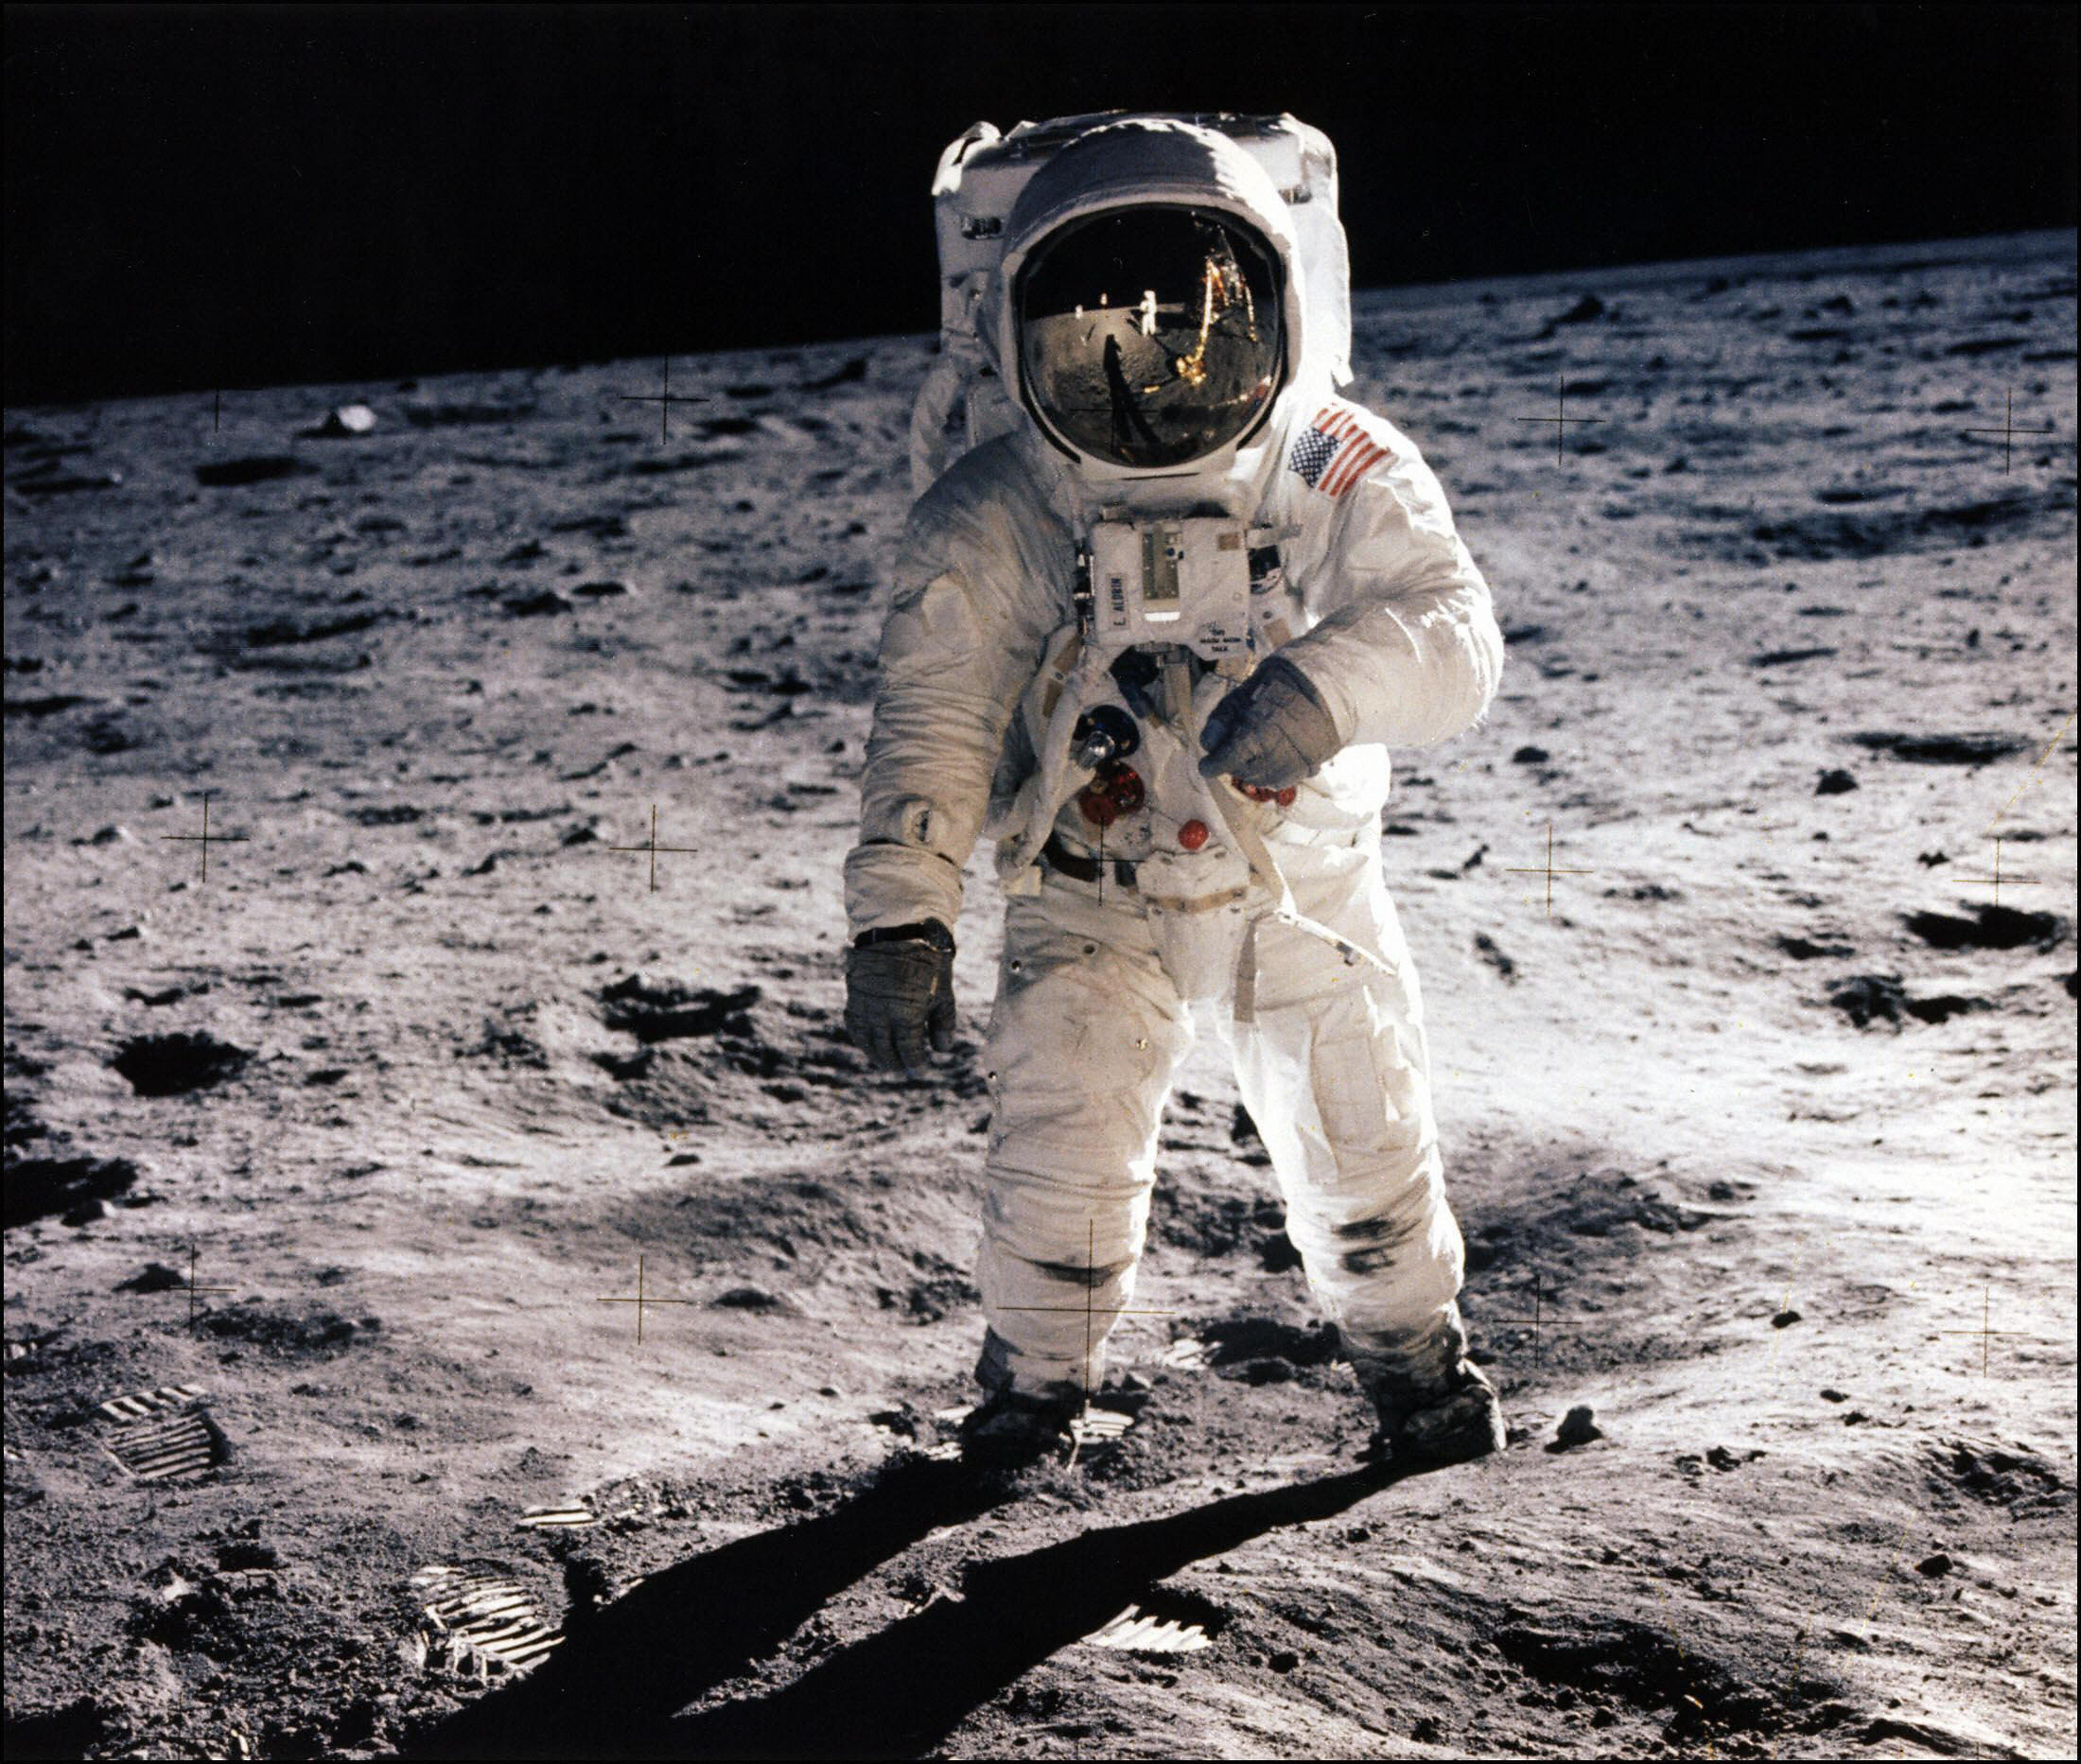 Recordings of the Apollo 11 moon landing to be auctioned at Sotheby's